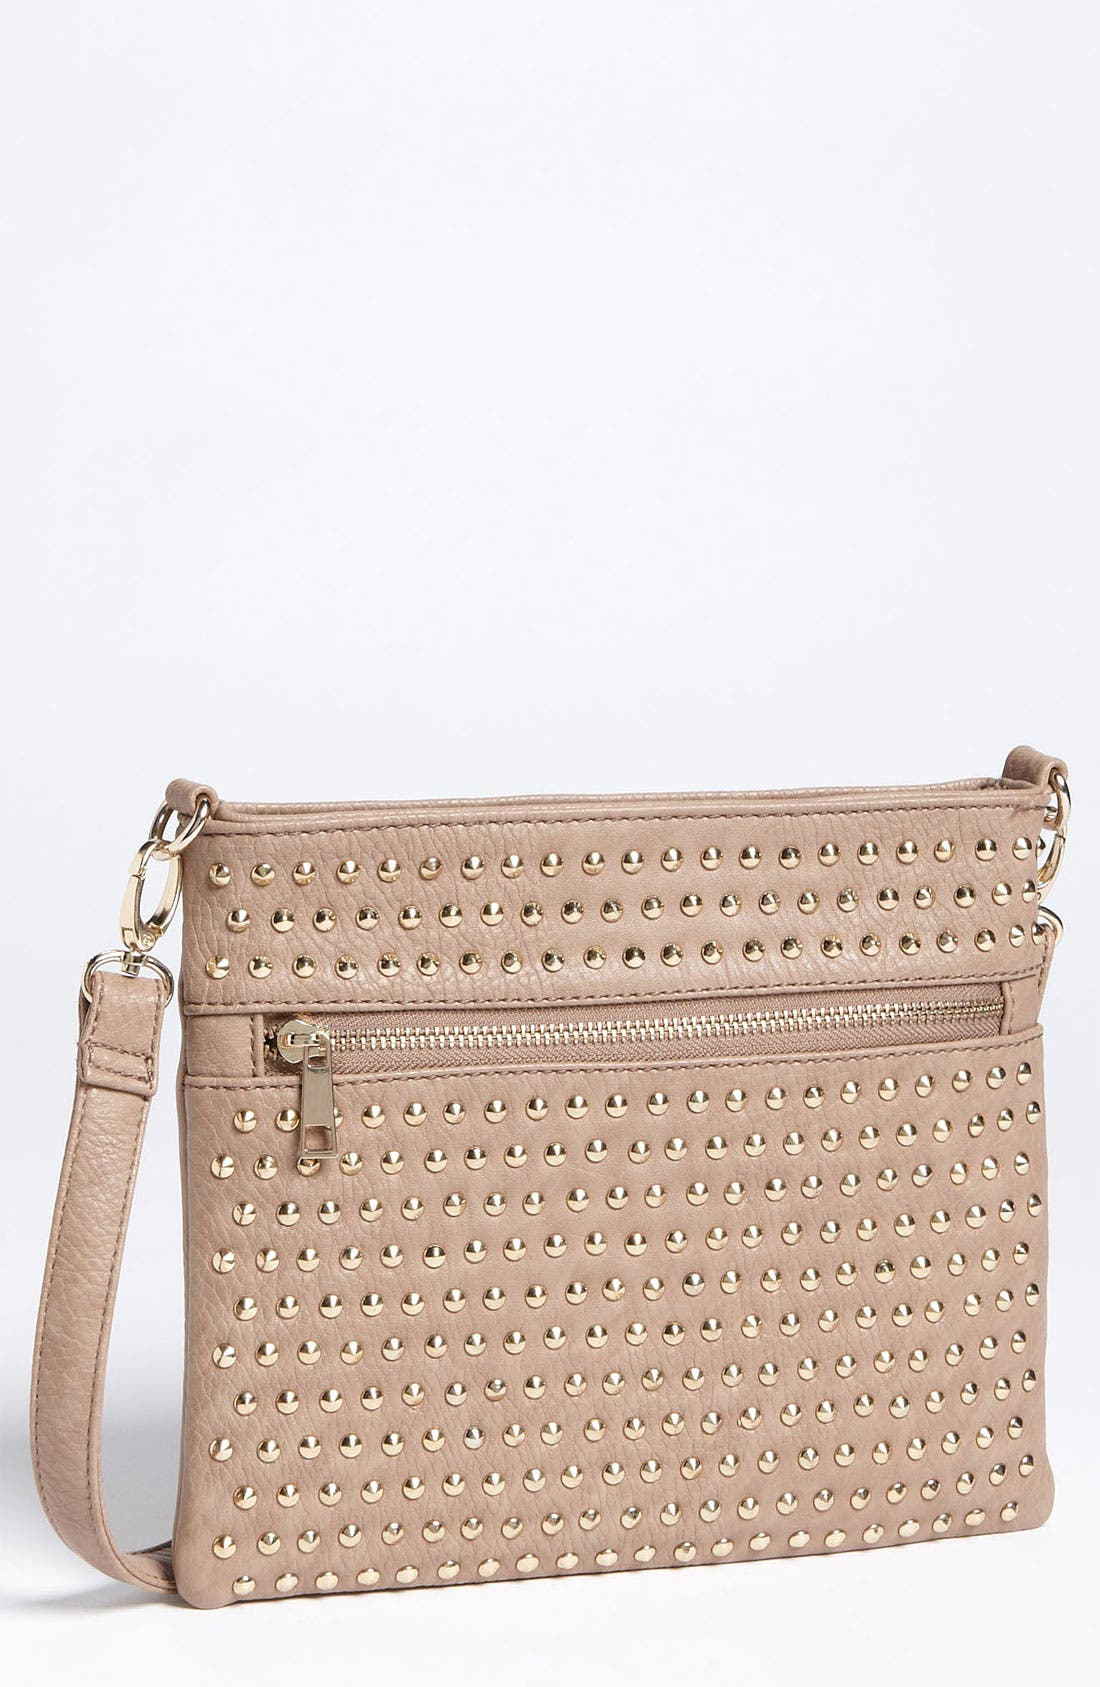 Alternate Image 1 Selected - Street Level Studded Convertible Crossbody Bag